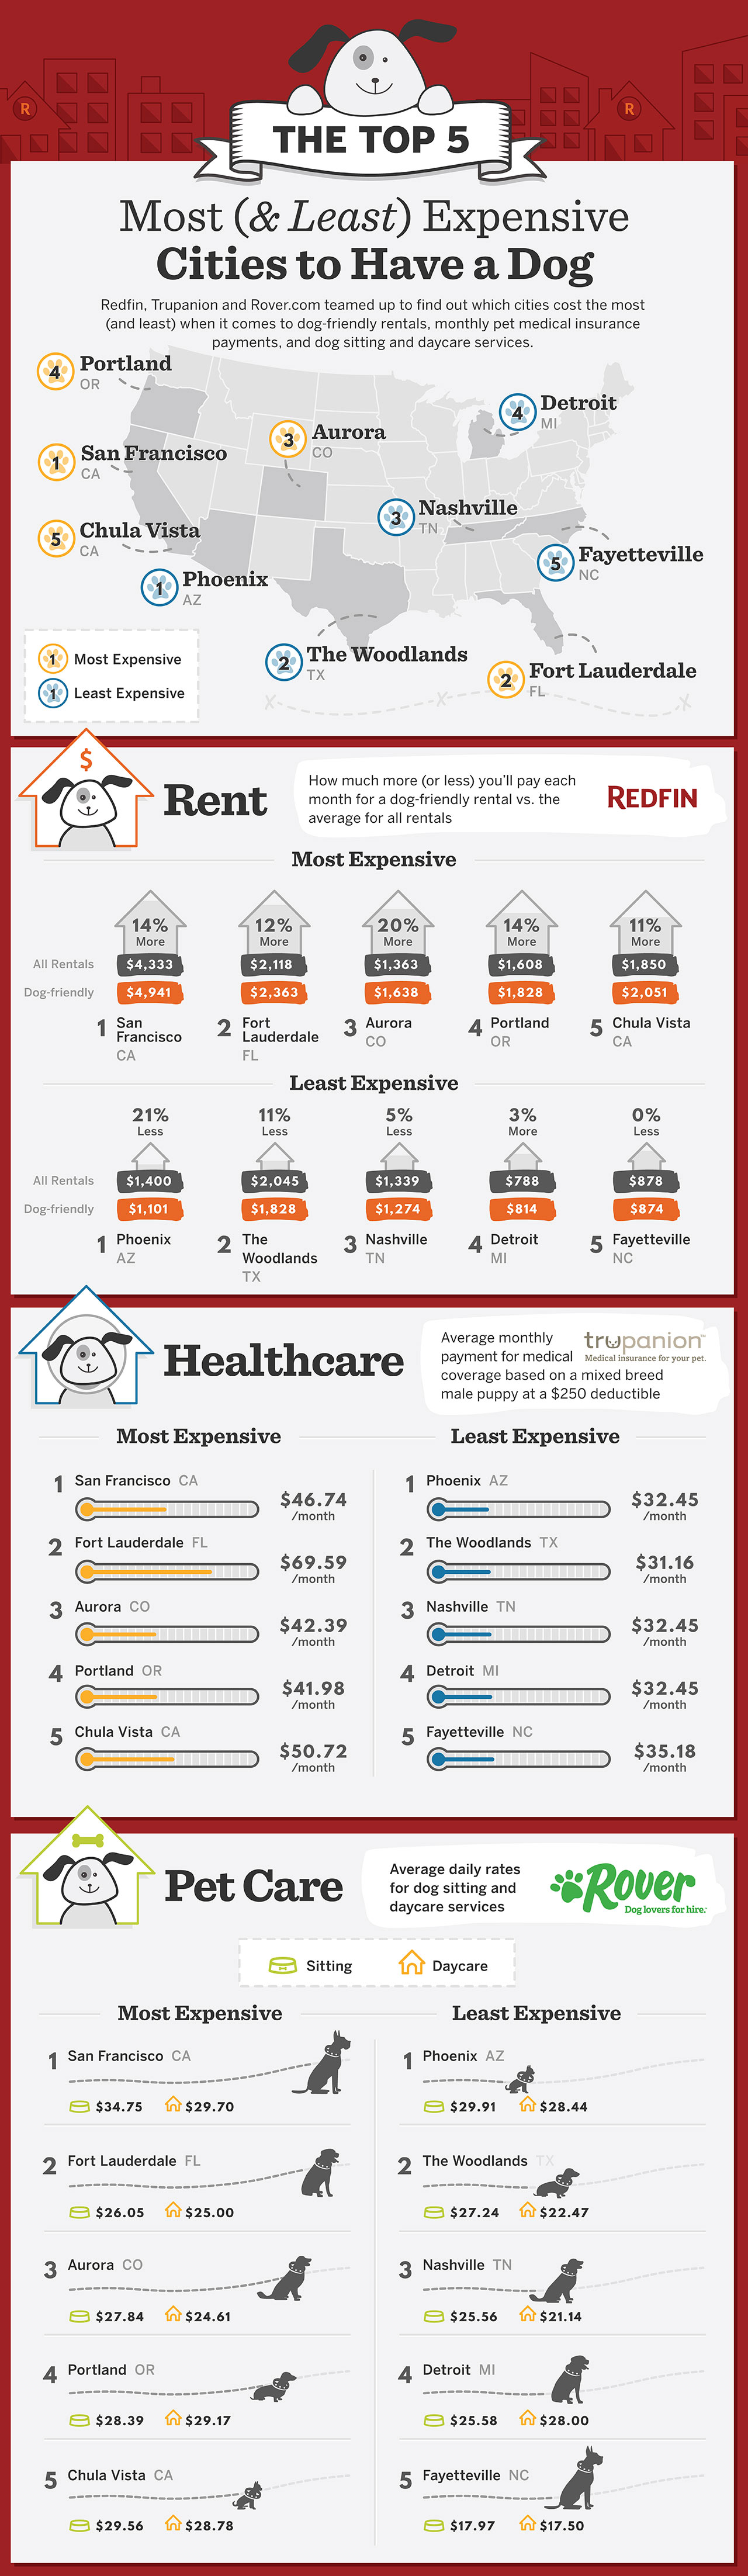 Most and least expensive cities